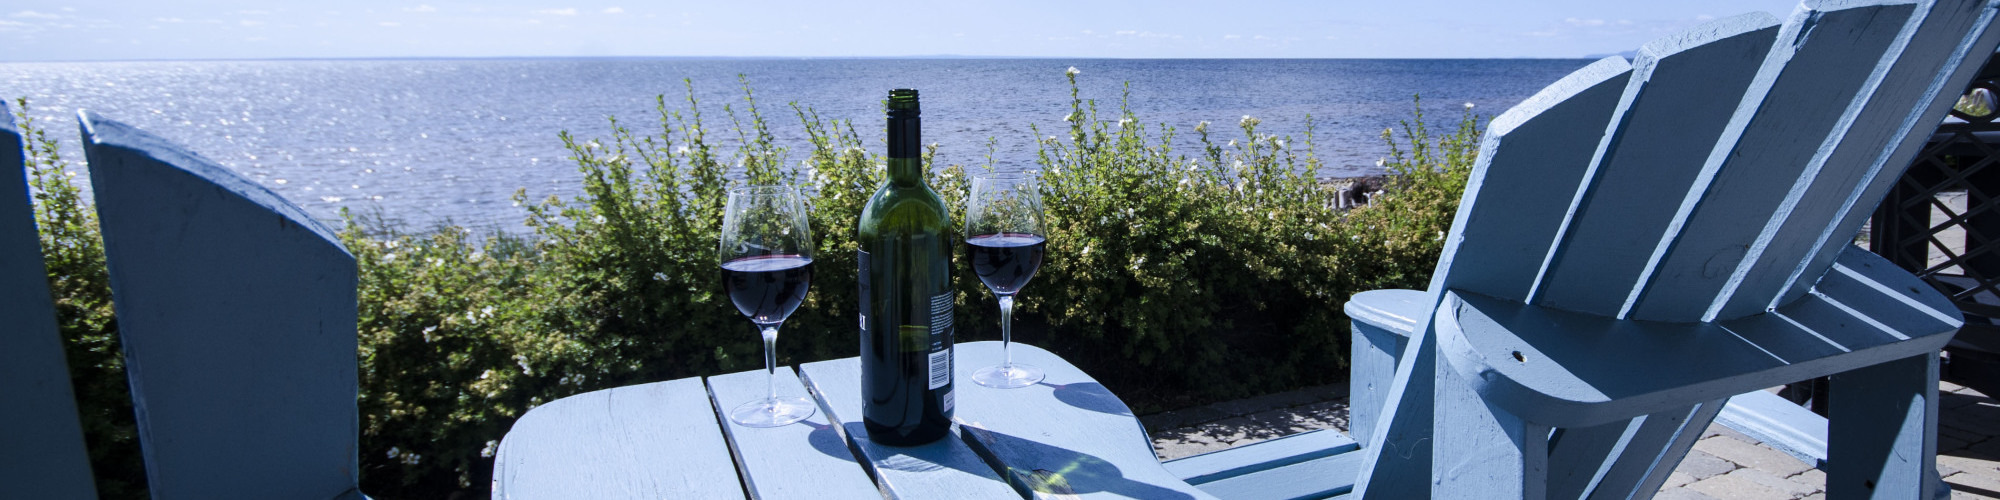 2 chairs on a terrace, sea view, wine glasses